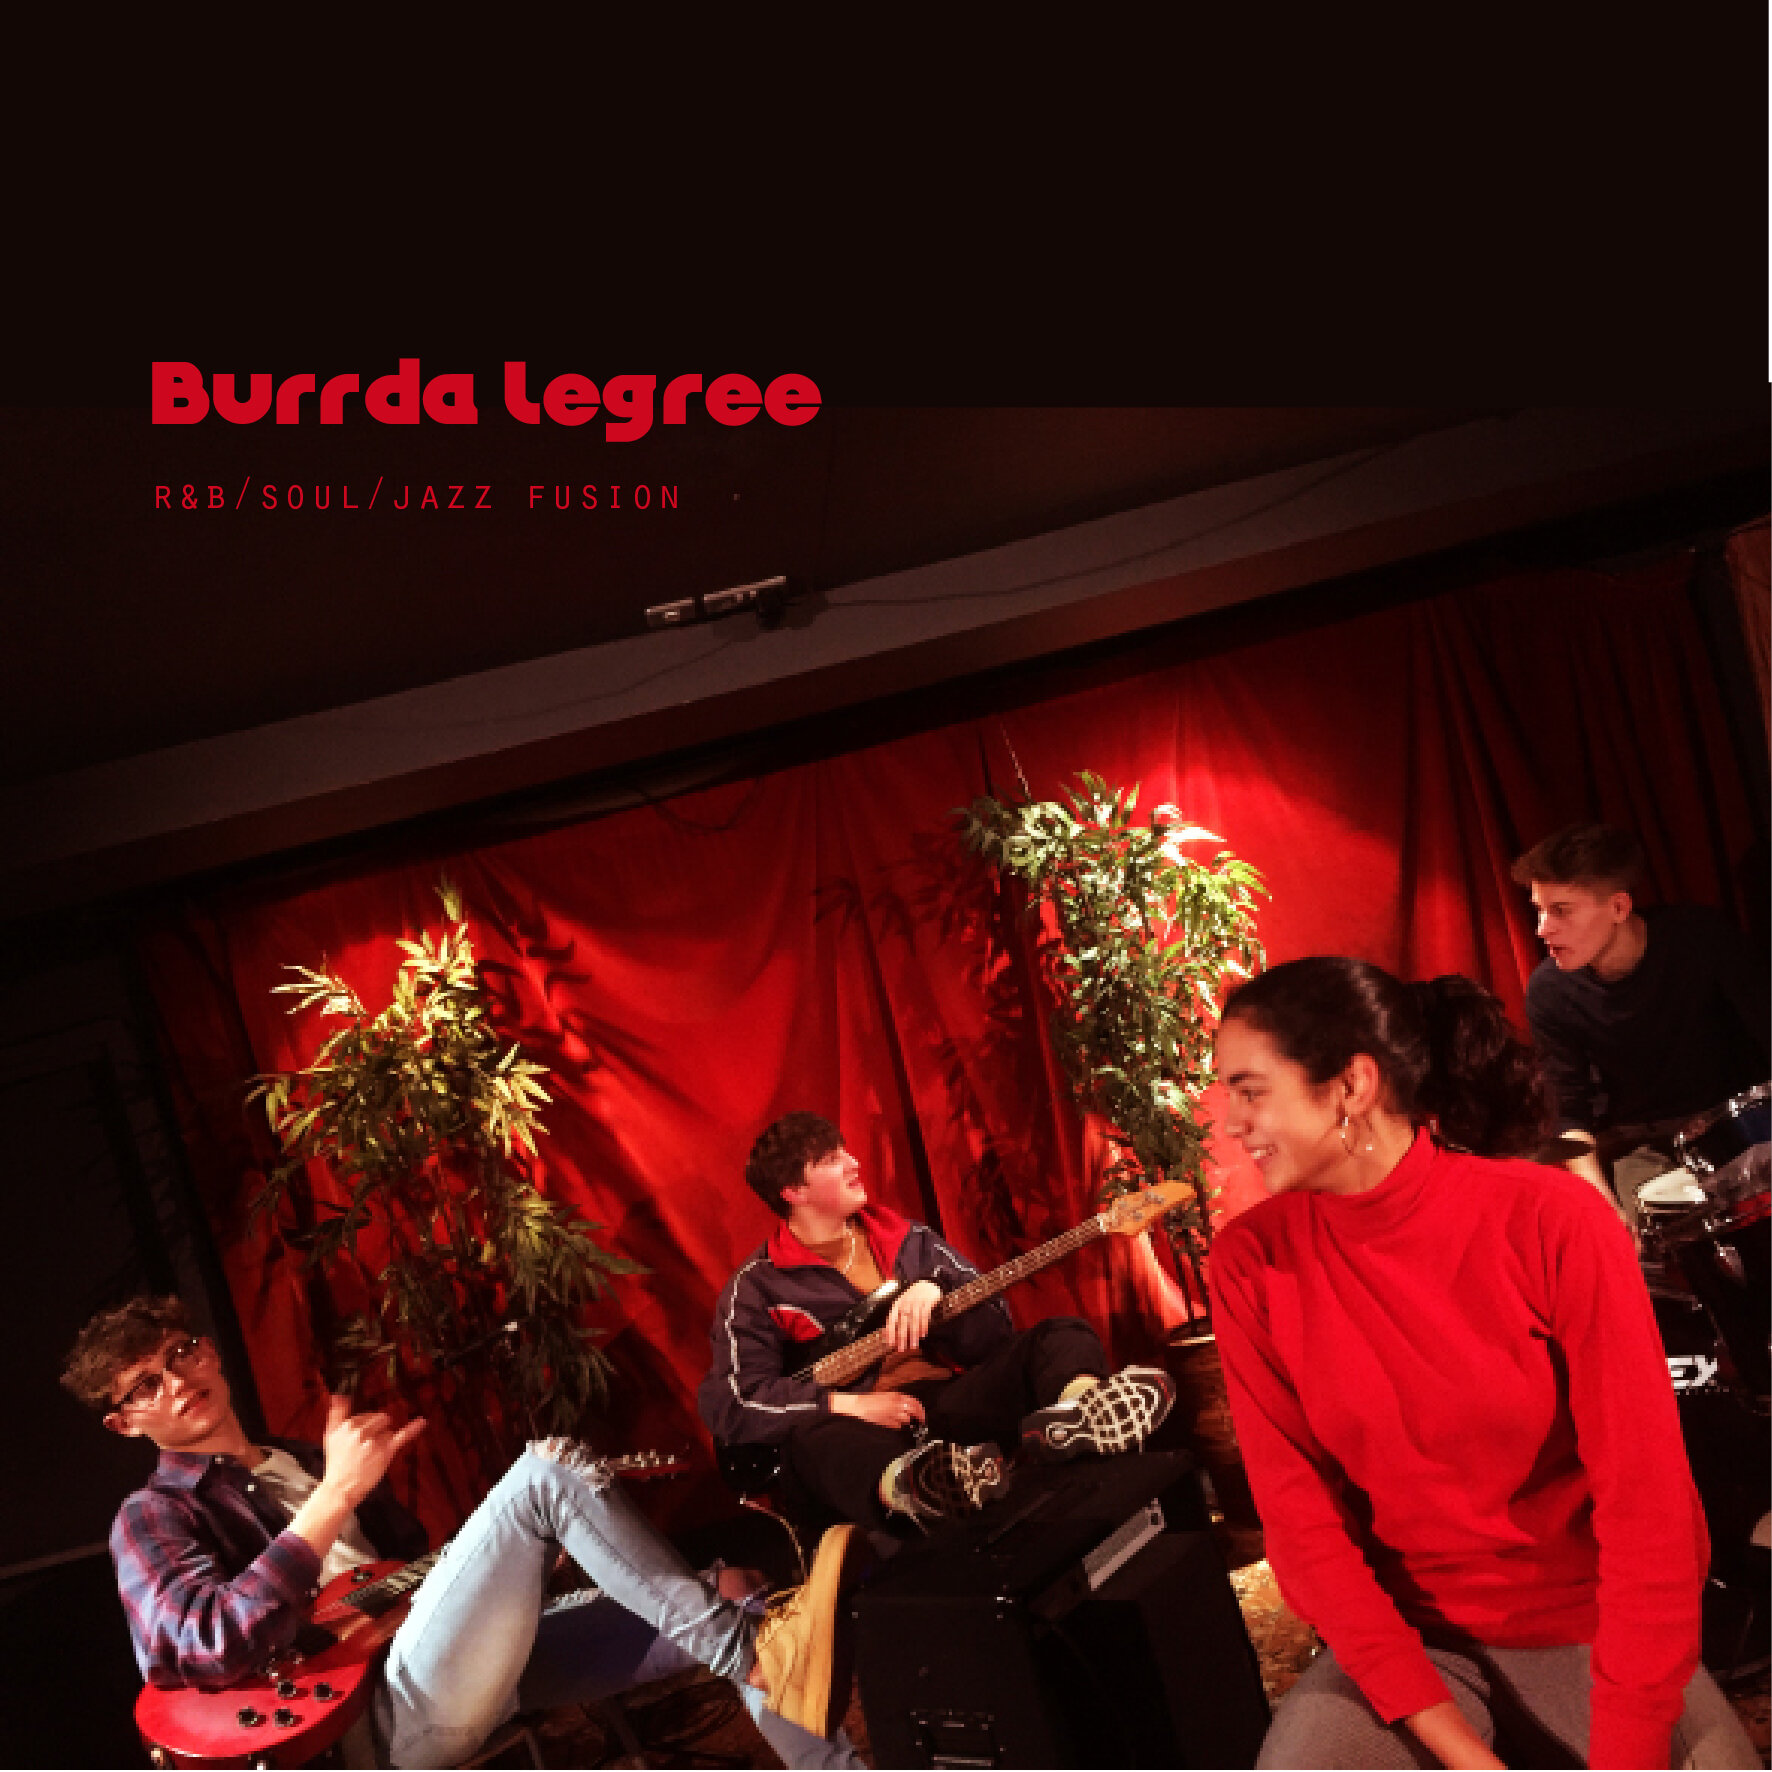 22:00 - 23:00 - Music with 'Burrda Legree' the Soulful R&B, Jazz Fusion.CLICK FOR MORE INFO & TICKETS >>